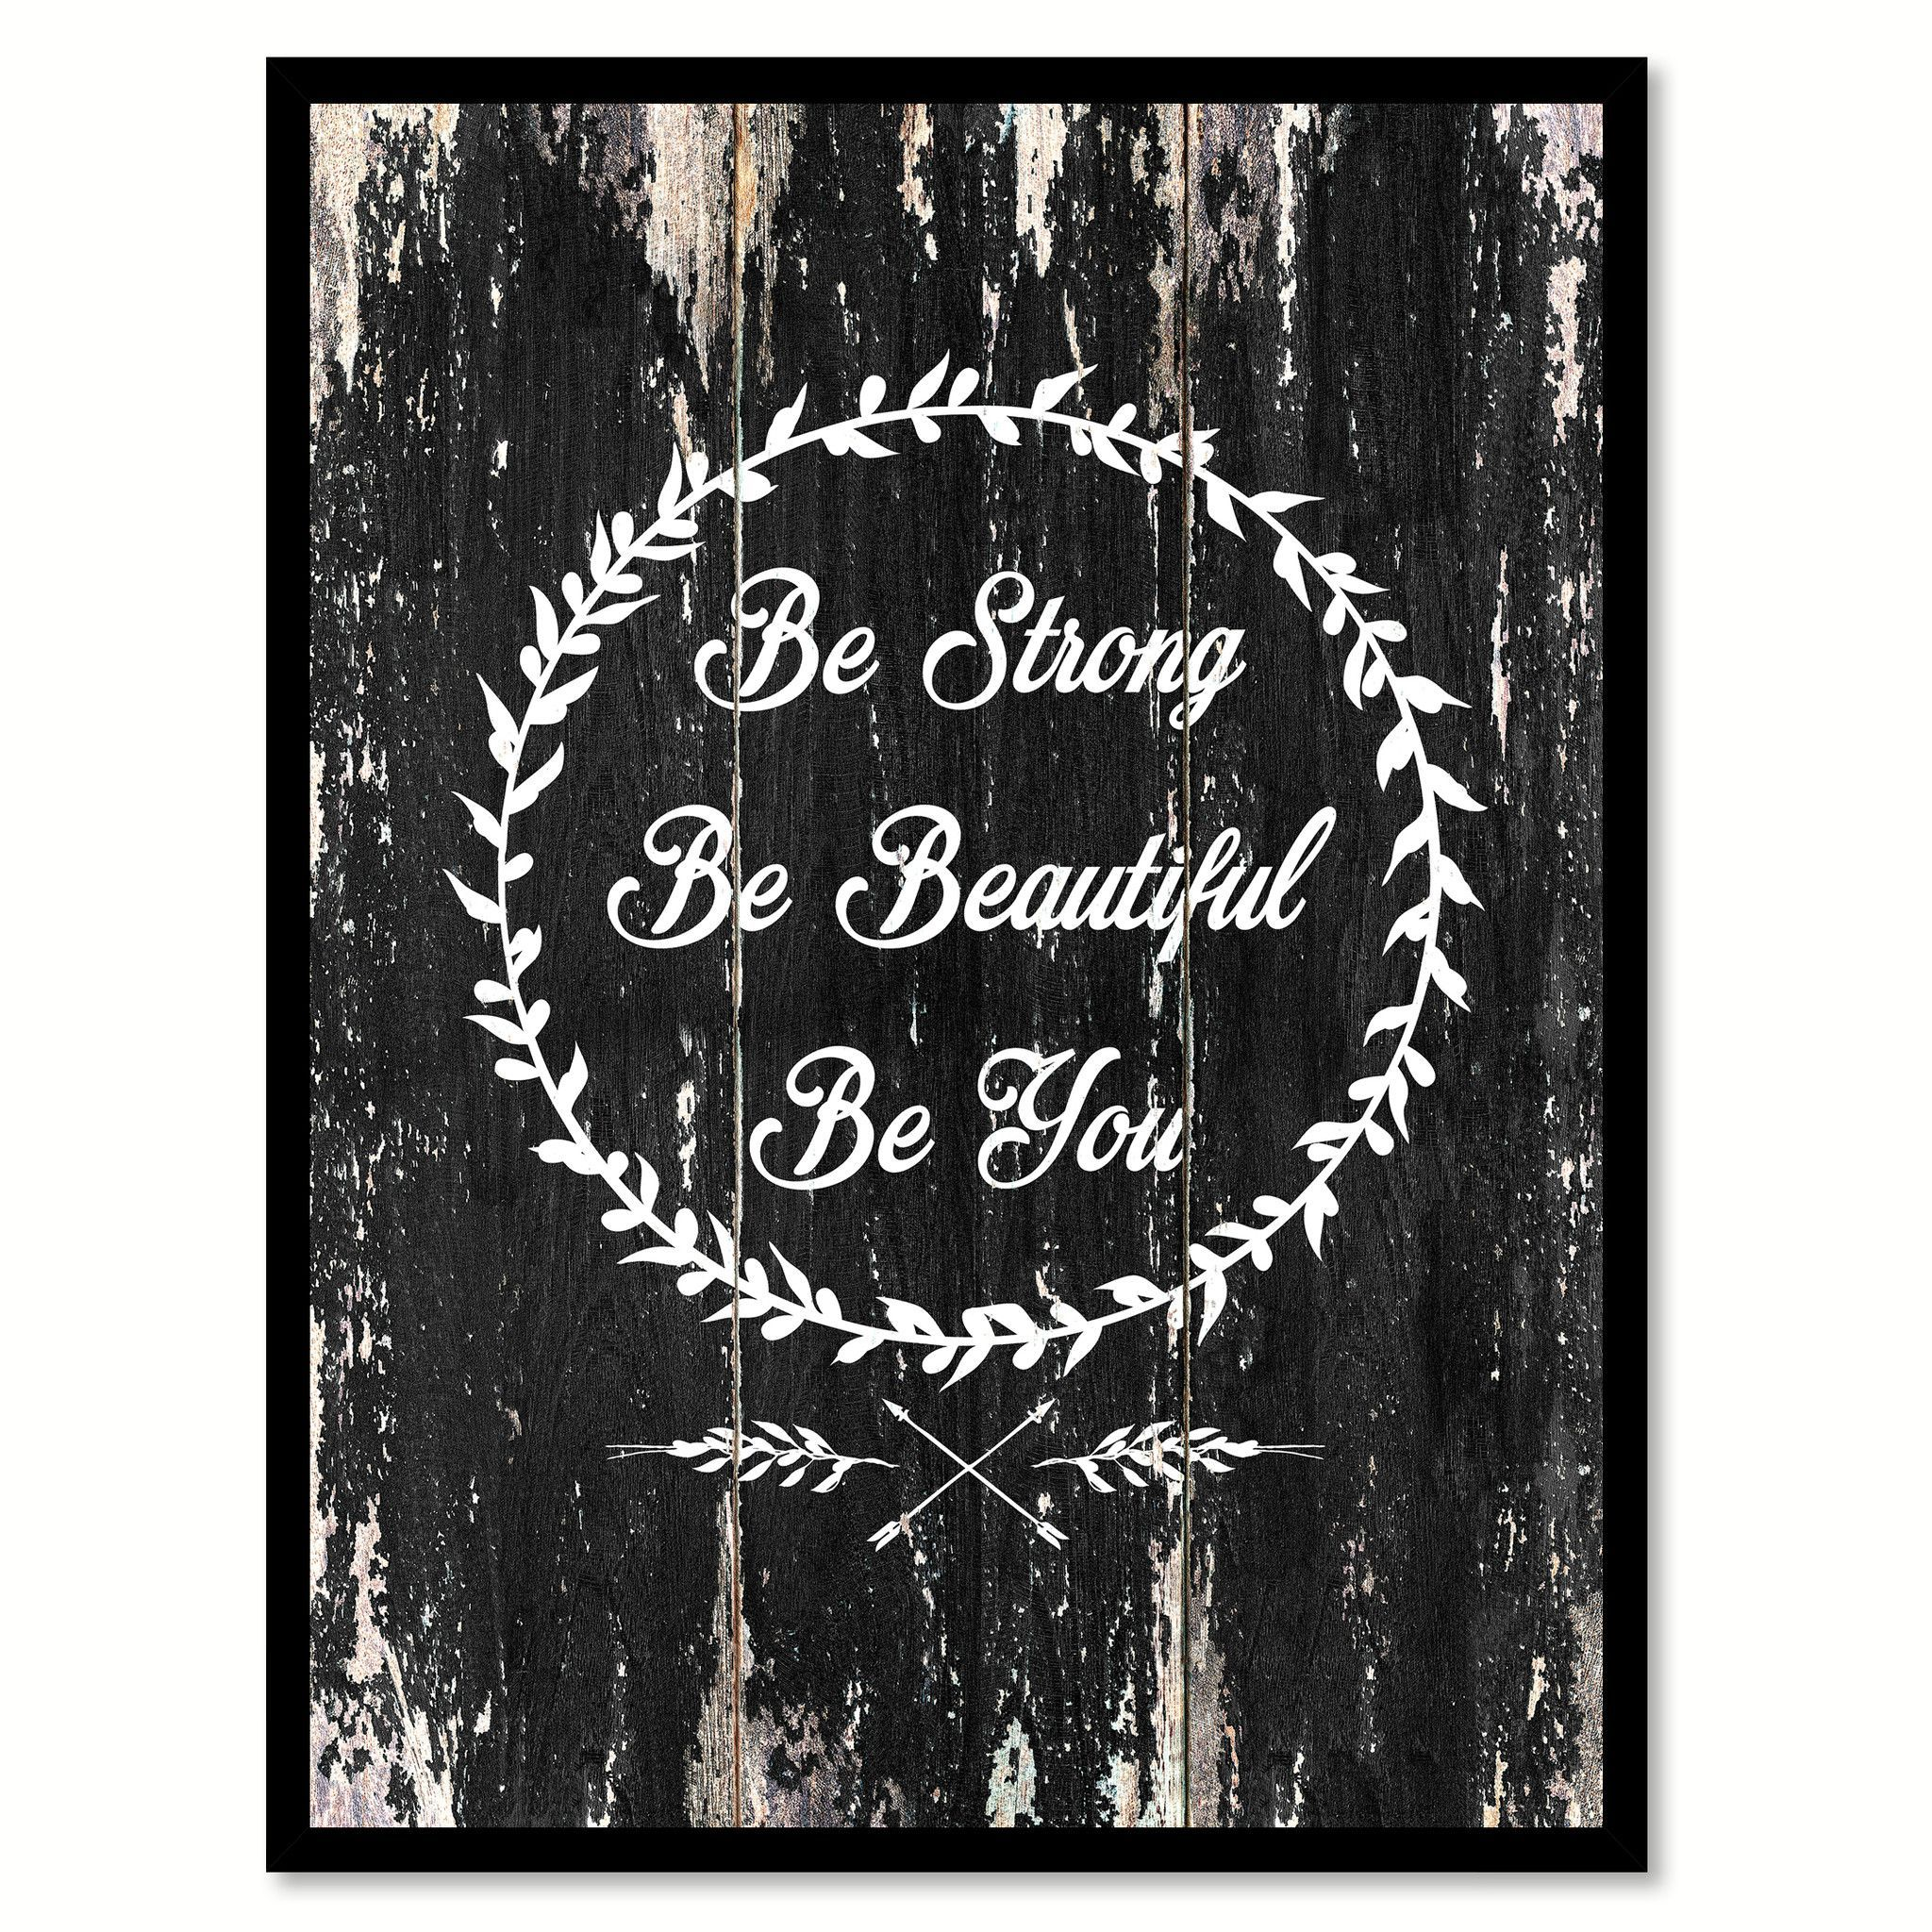 Be strong be beautiful be you motivational quote saying canvas